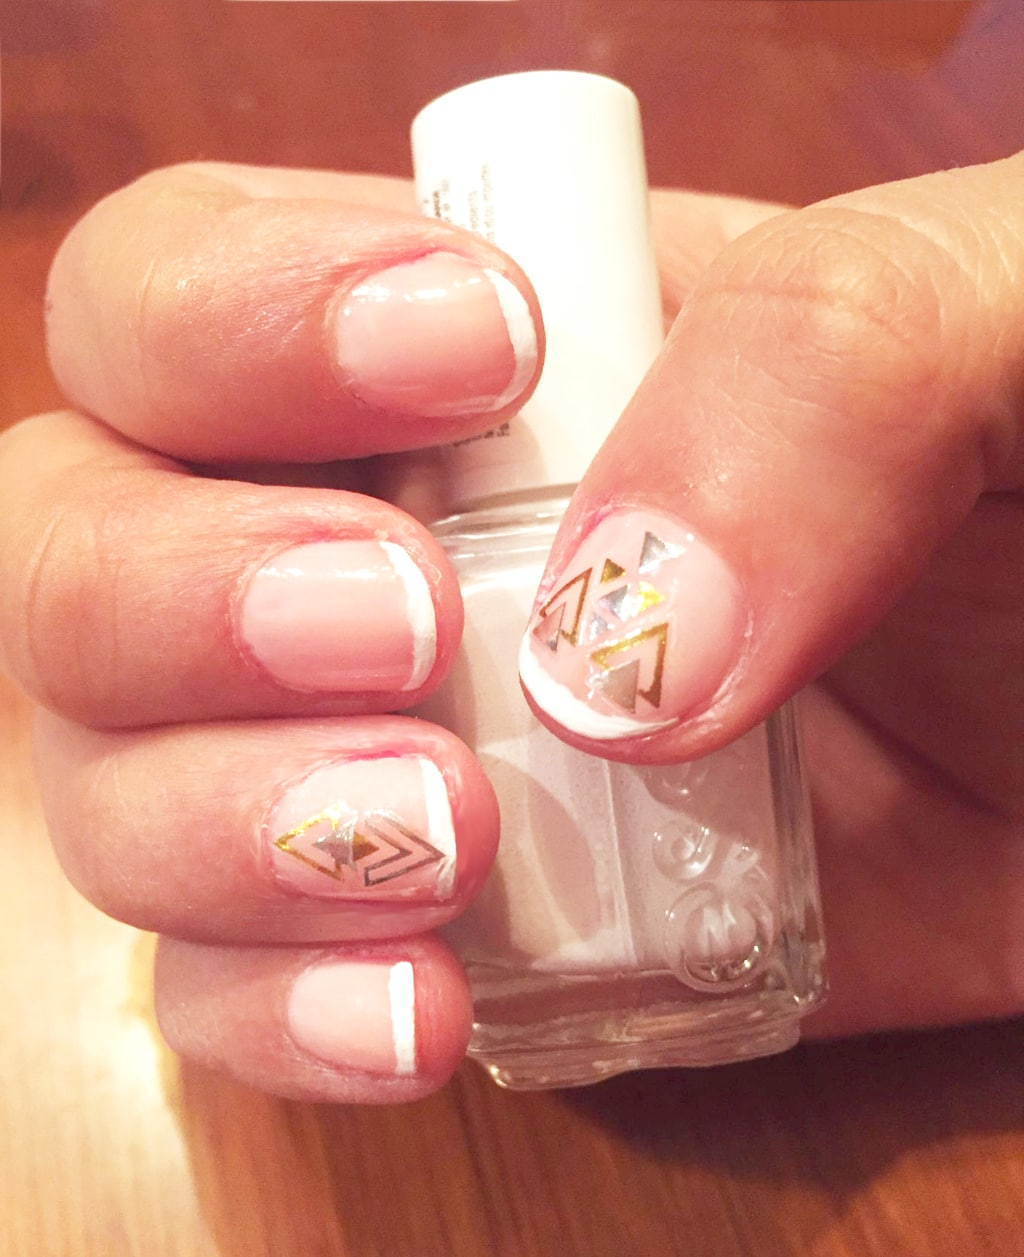 Nail stickers on french nails